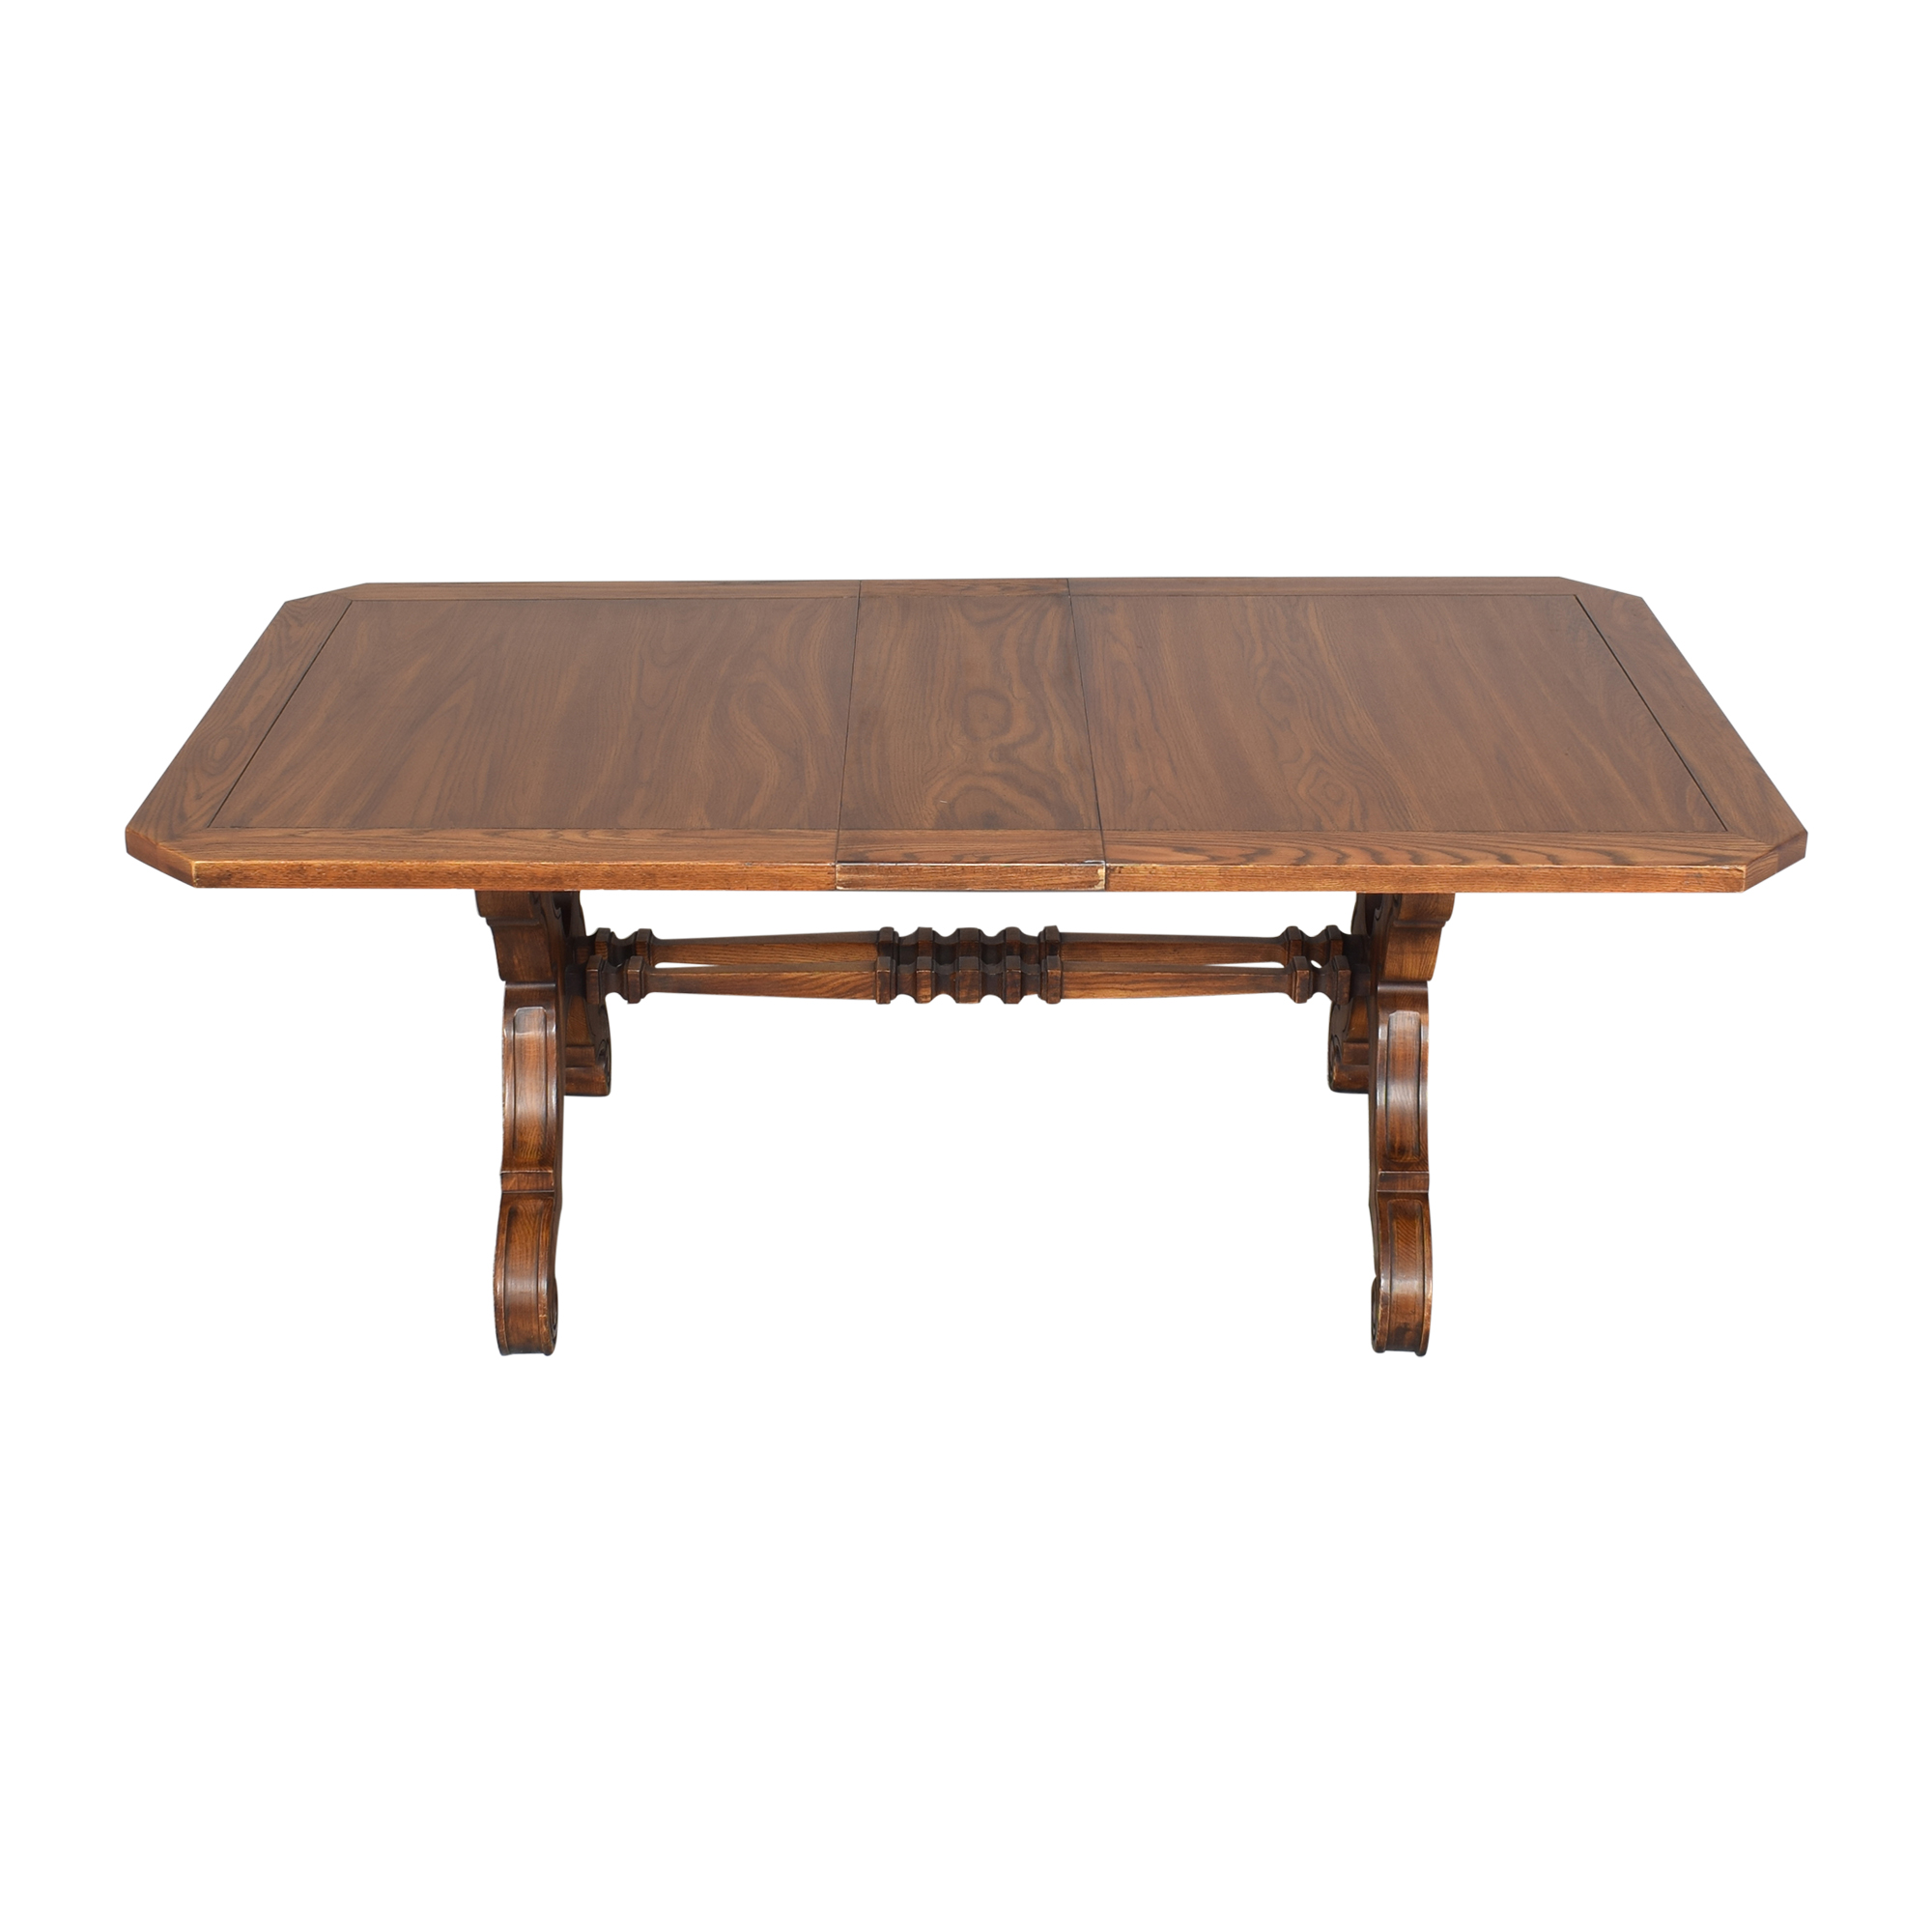 Link-Taylor Link-Taylor Extendable Dining Table used